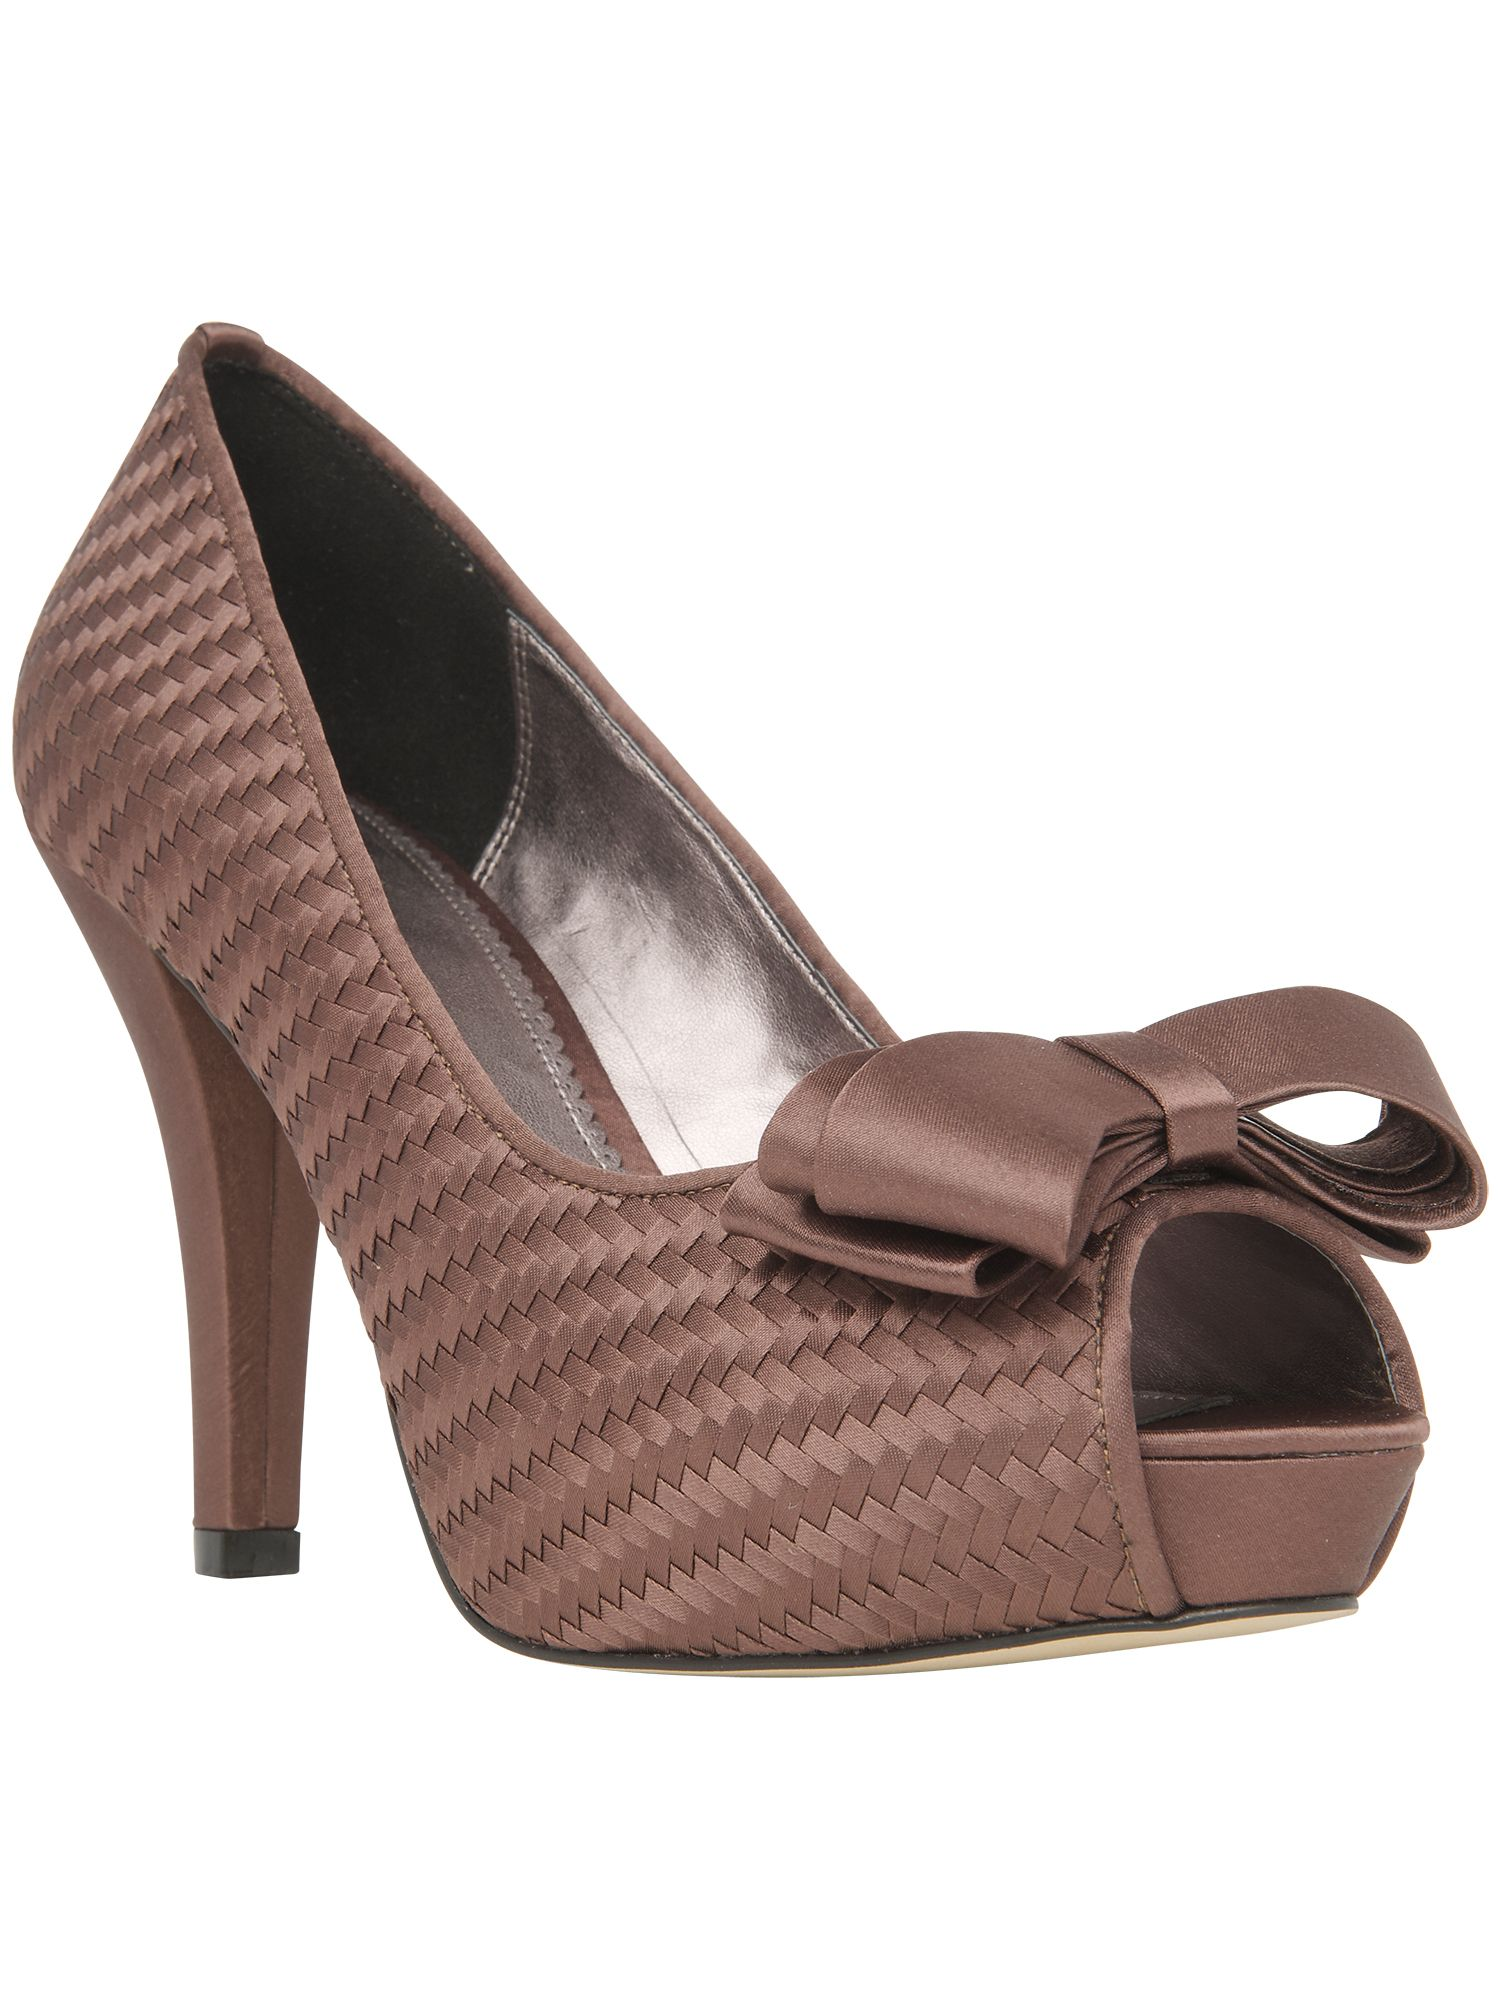 Becky weave peep toe shoes